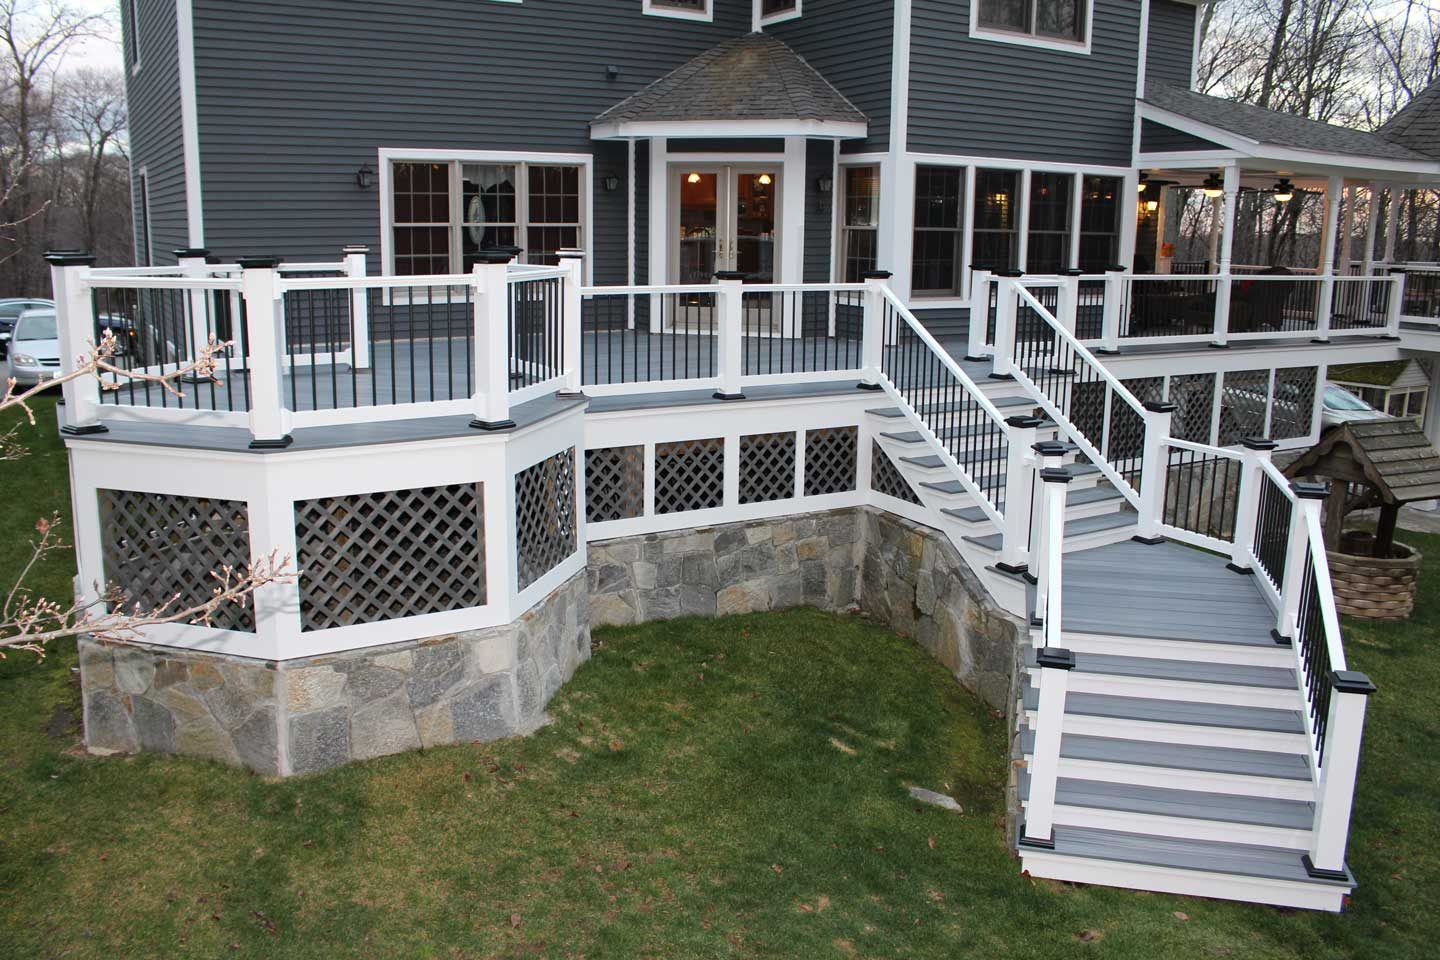 fairway-architectural-deck-railings